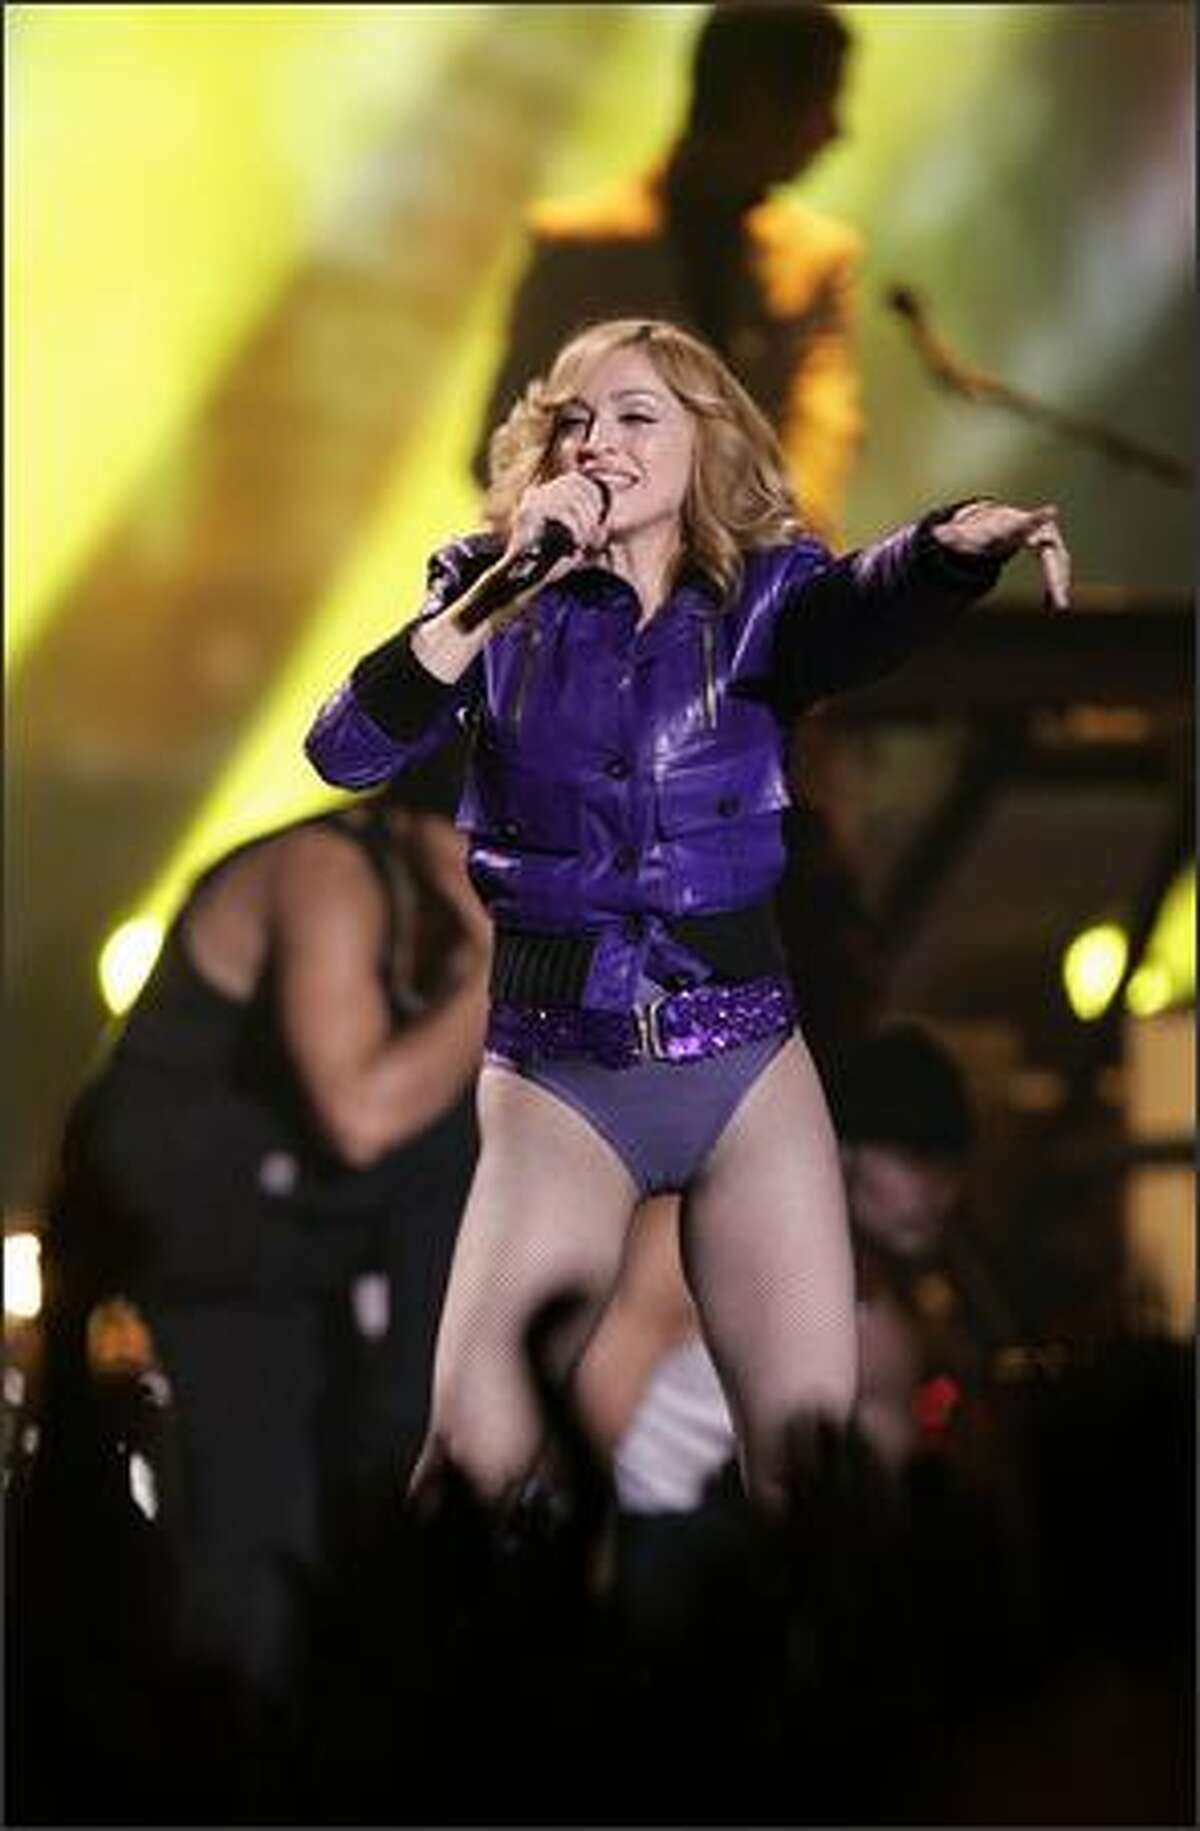 Madonna performs during the MTV Europe Music Awards ceremony at the Atlantic Pavillion in Lisbon, Portugal. (AP Photo/Armando Franca)